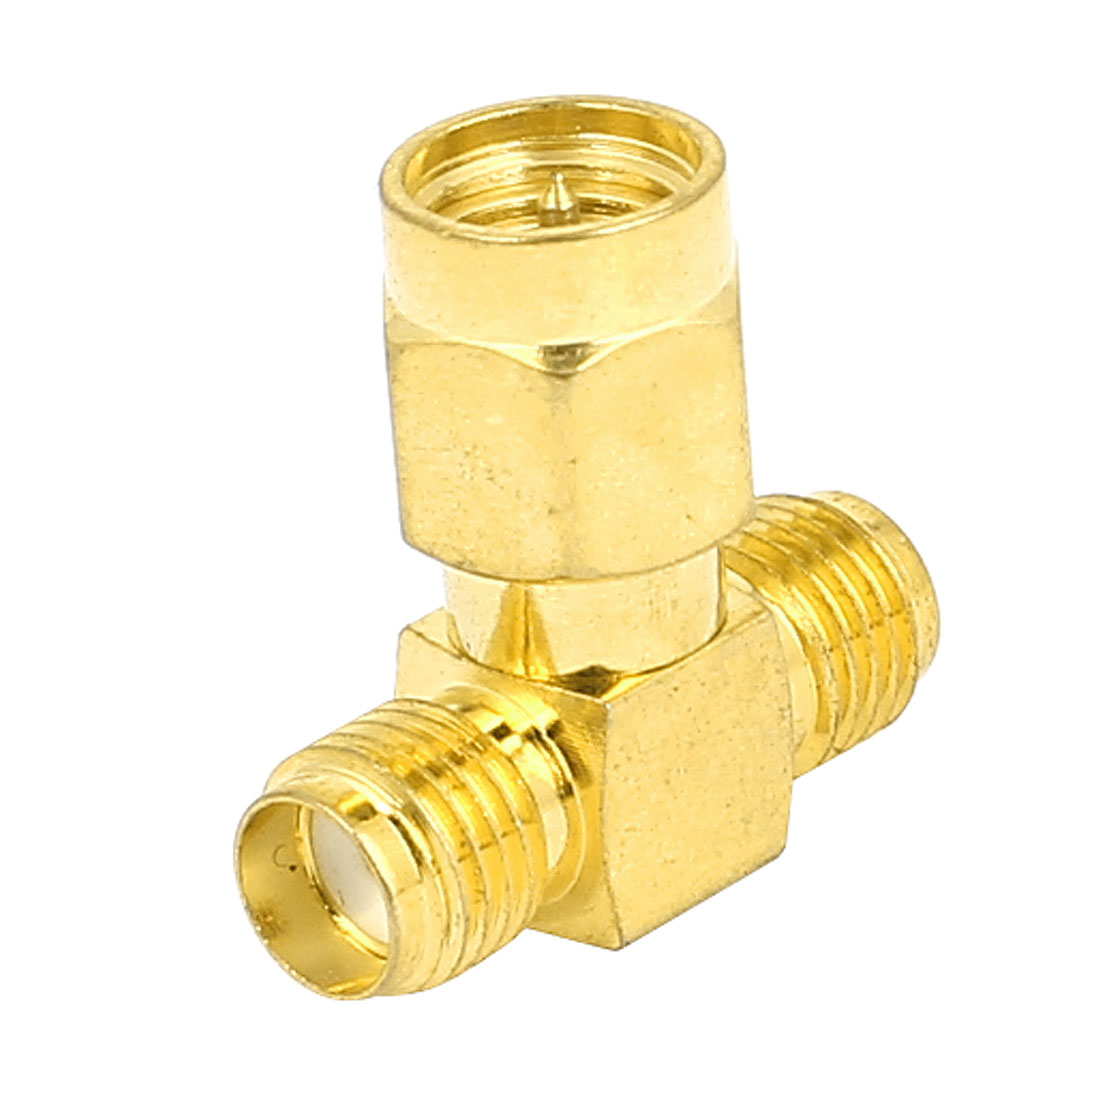 Gold Tone Straight SMA Male to Double SMA Female RF Coax Tee Connector